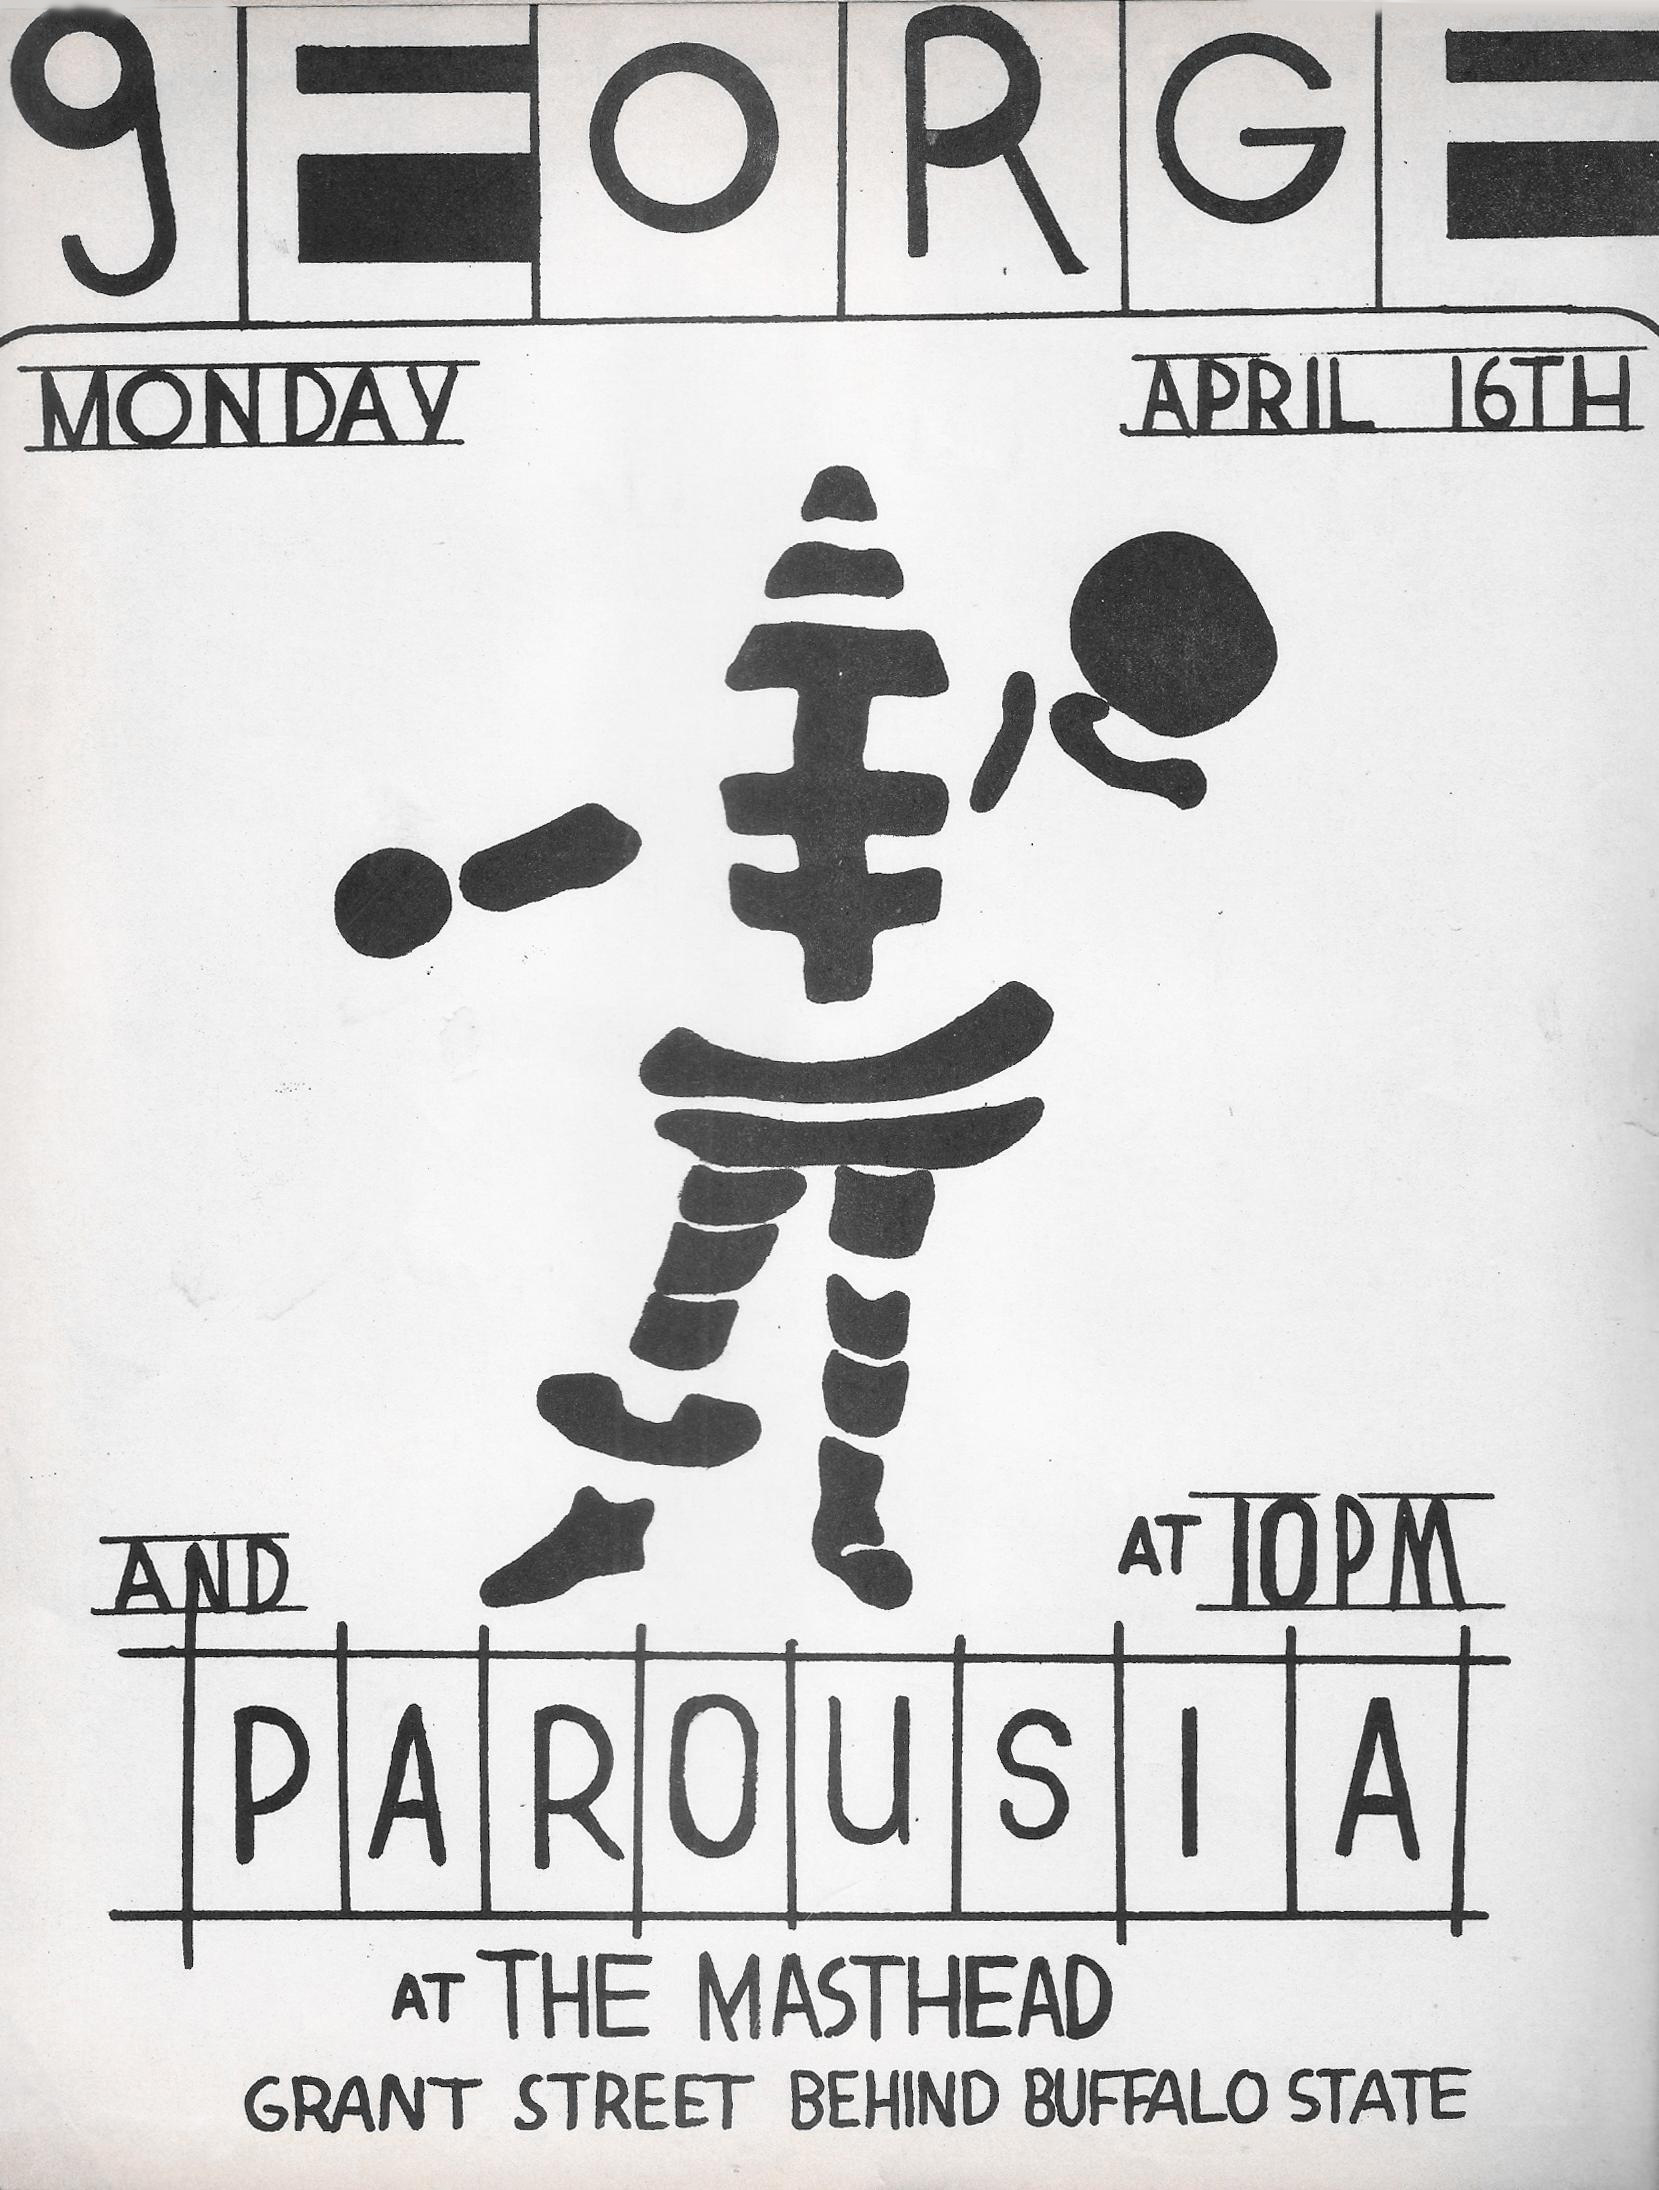 Parousia at the Masthead - April 16th, 1979